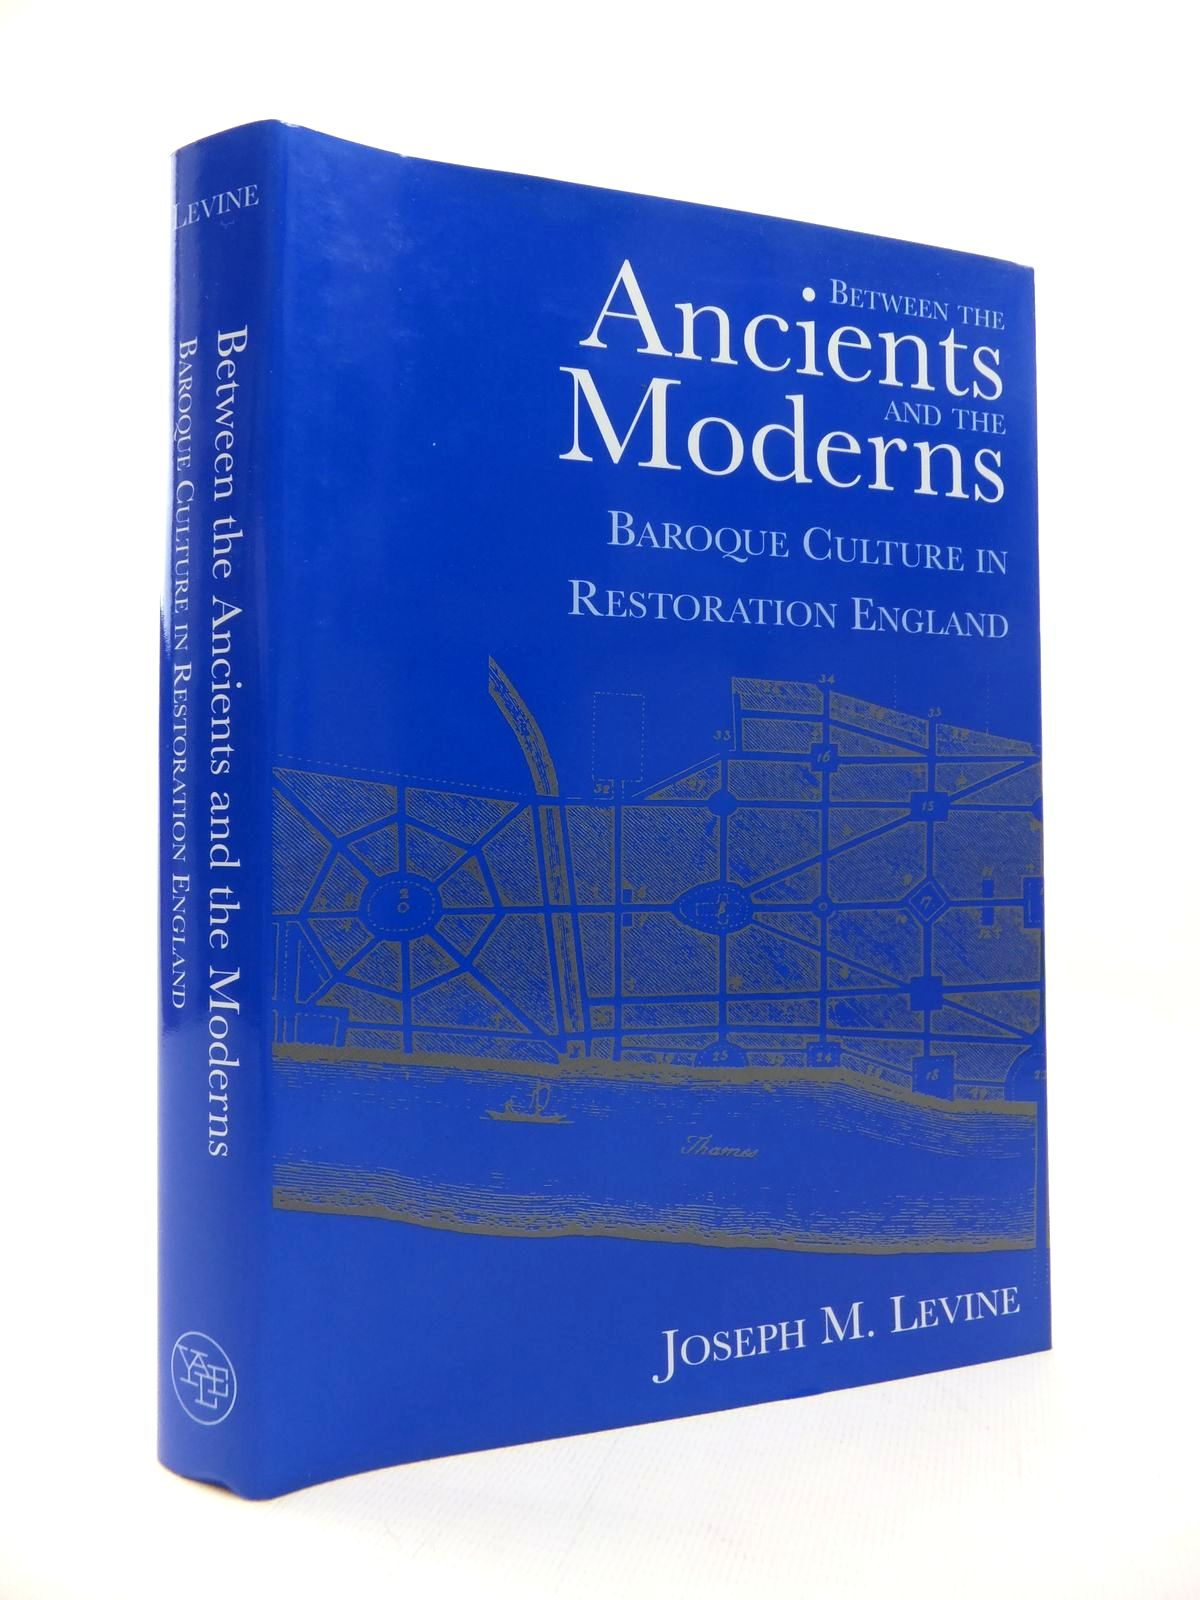 Photo of BETWEEN THE ANCIENTS AND THE MODERNS: BAROQUE CULTURE IN RESTORATION ENGLAND written by Levine, Joseph M. published by Yale University Press (STOCK CODE: 1814566)  for sale by Stella & Rose's Books